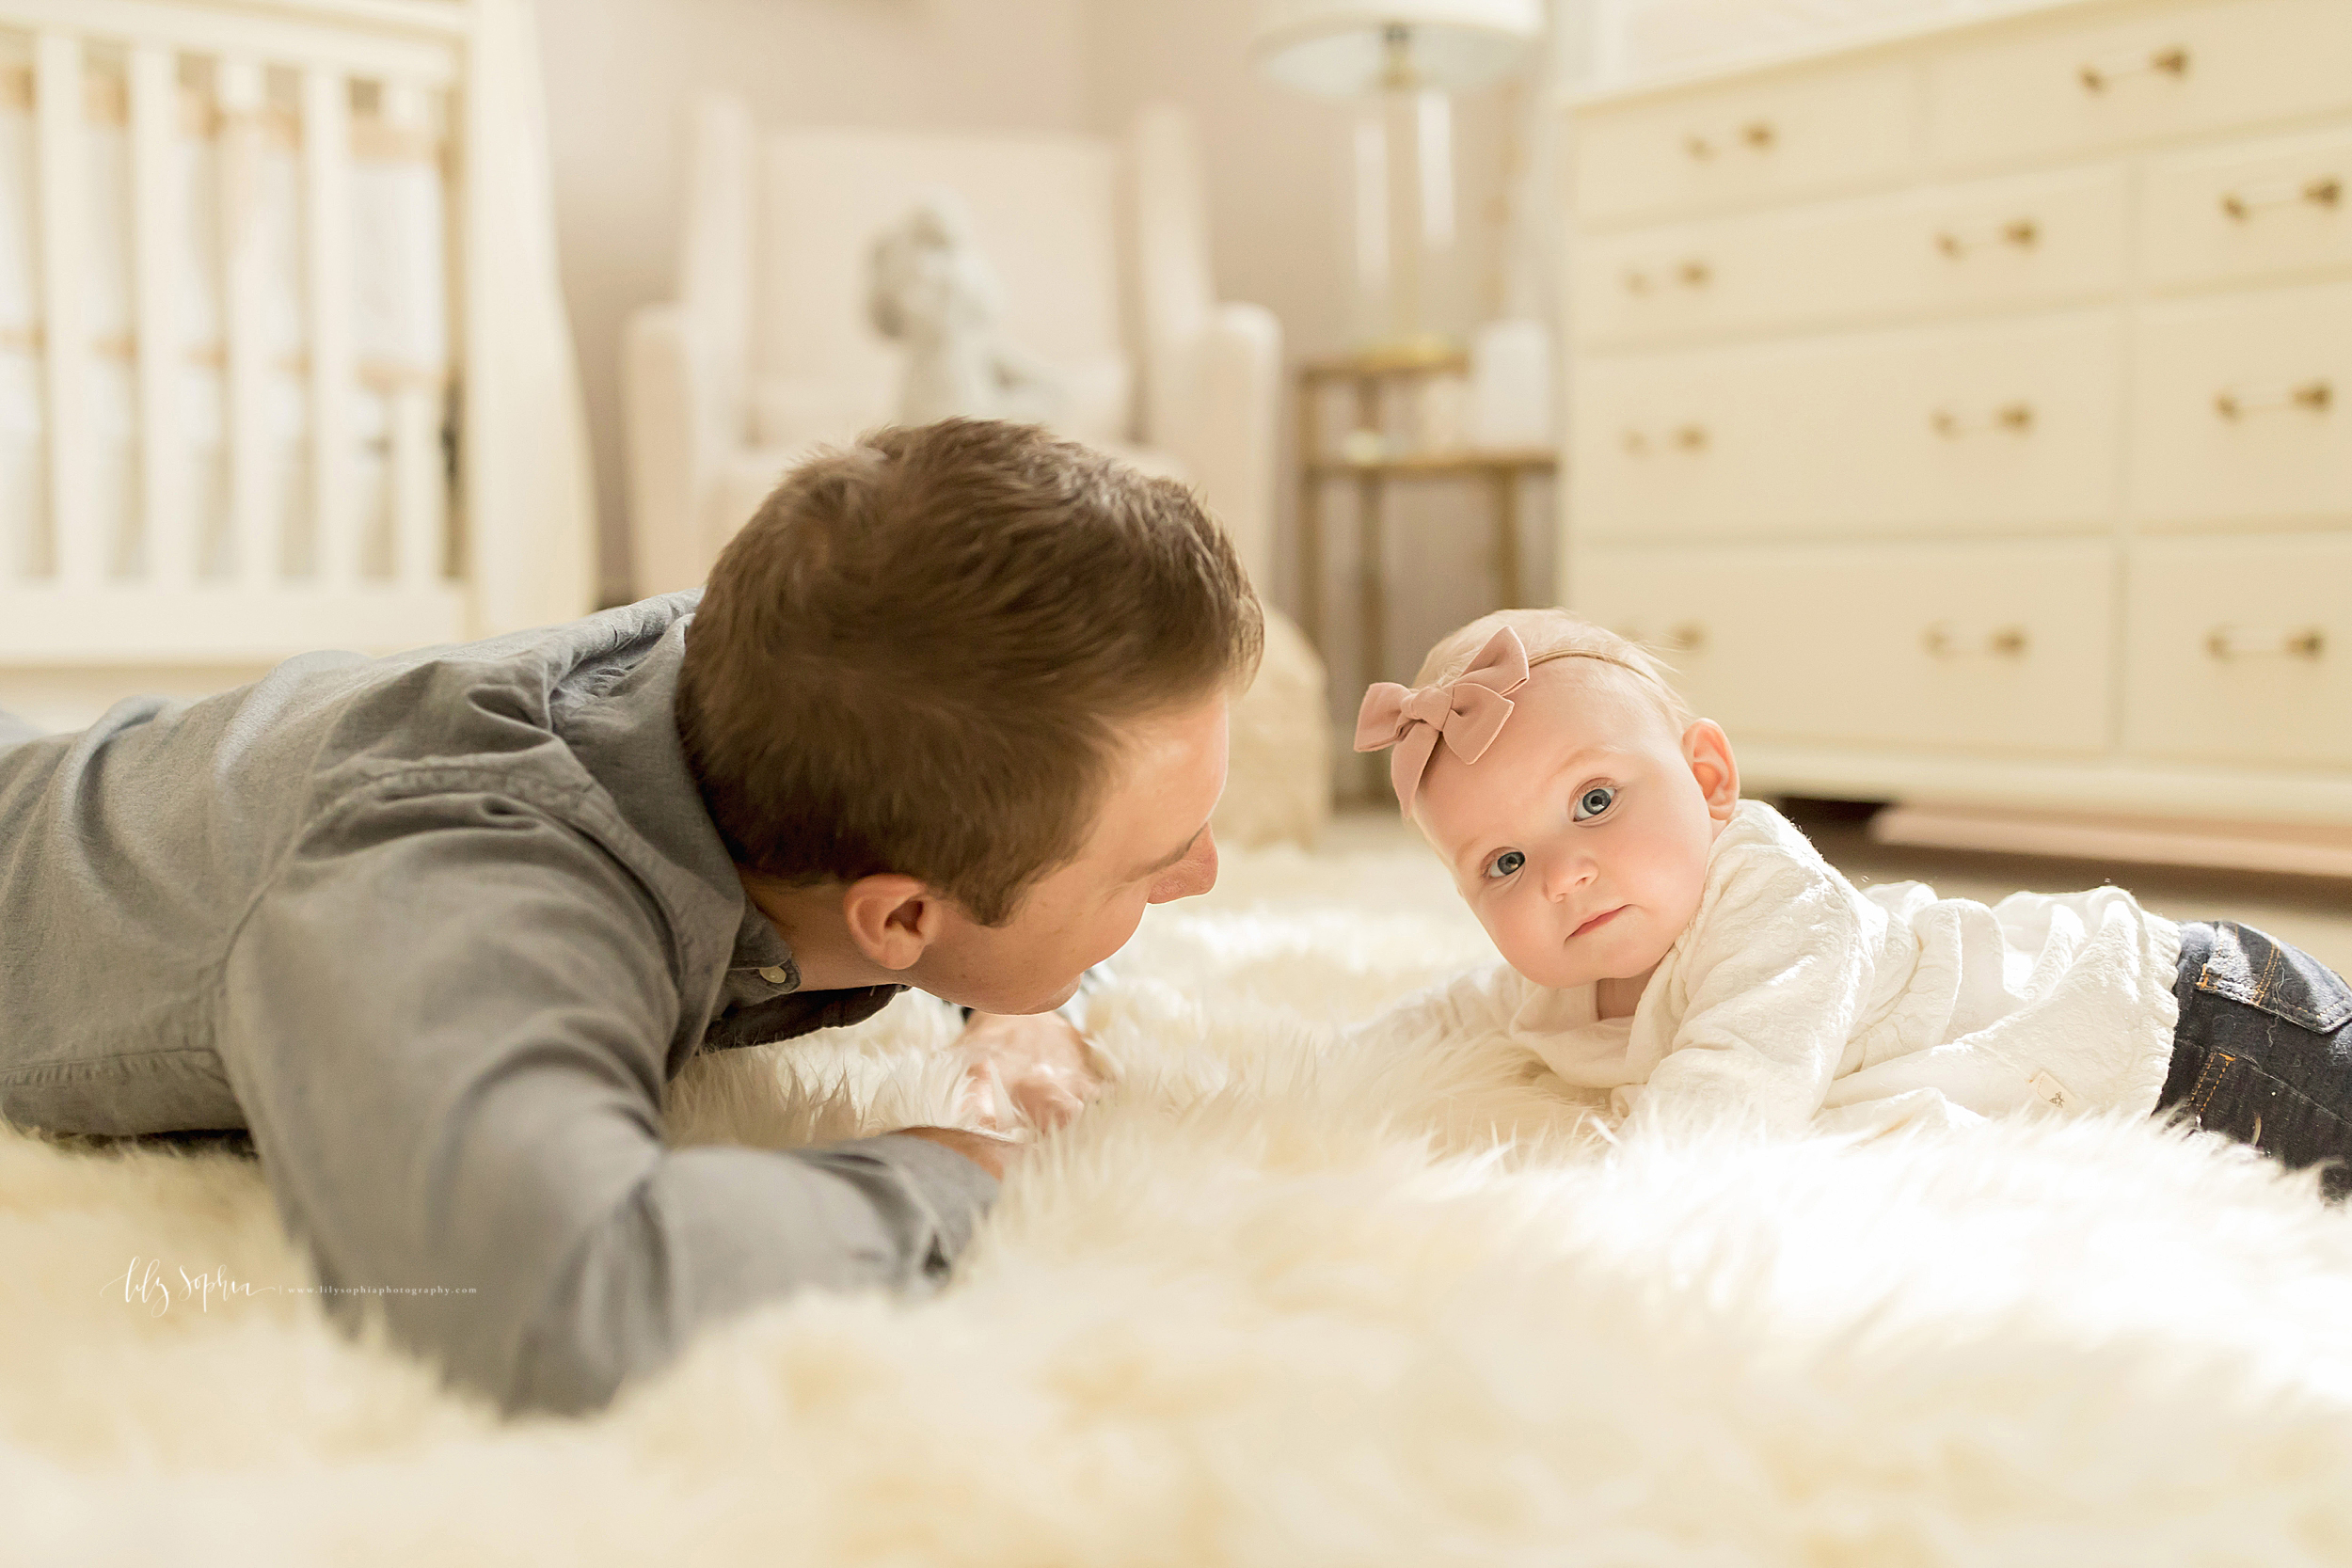 atlanta-midtown-brookhaven-ashford-dunwoody-virginia-highlands-roswell-decatur-lily-sophia-photography-in-home-six-month-milestone-family-lifestyle-session-sandy-springs_0668.jpg